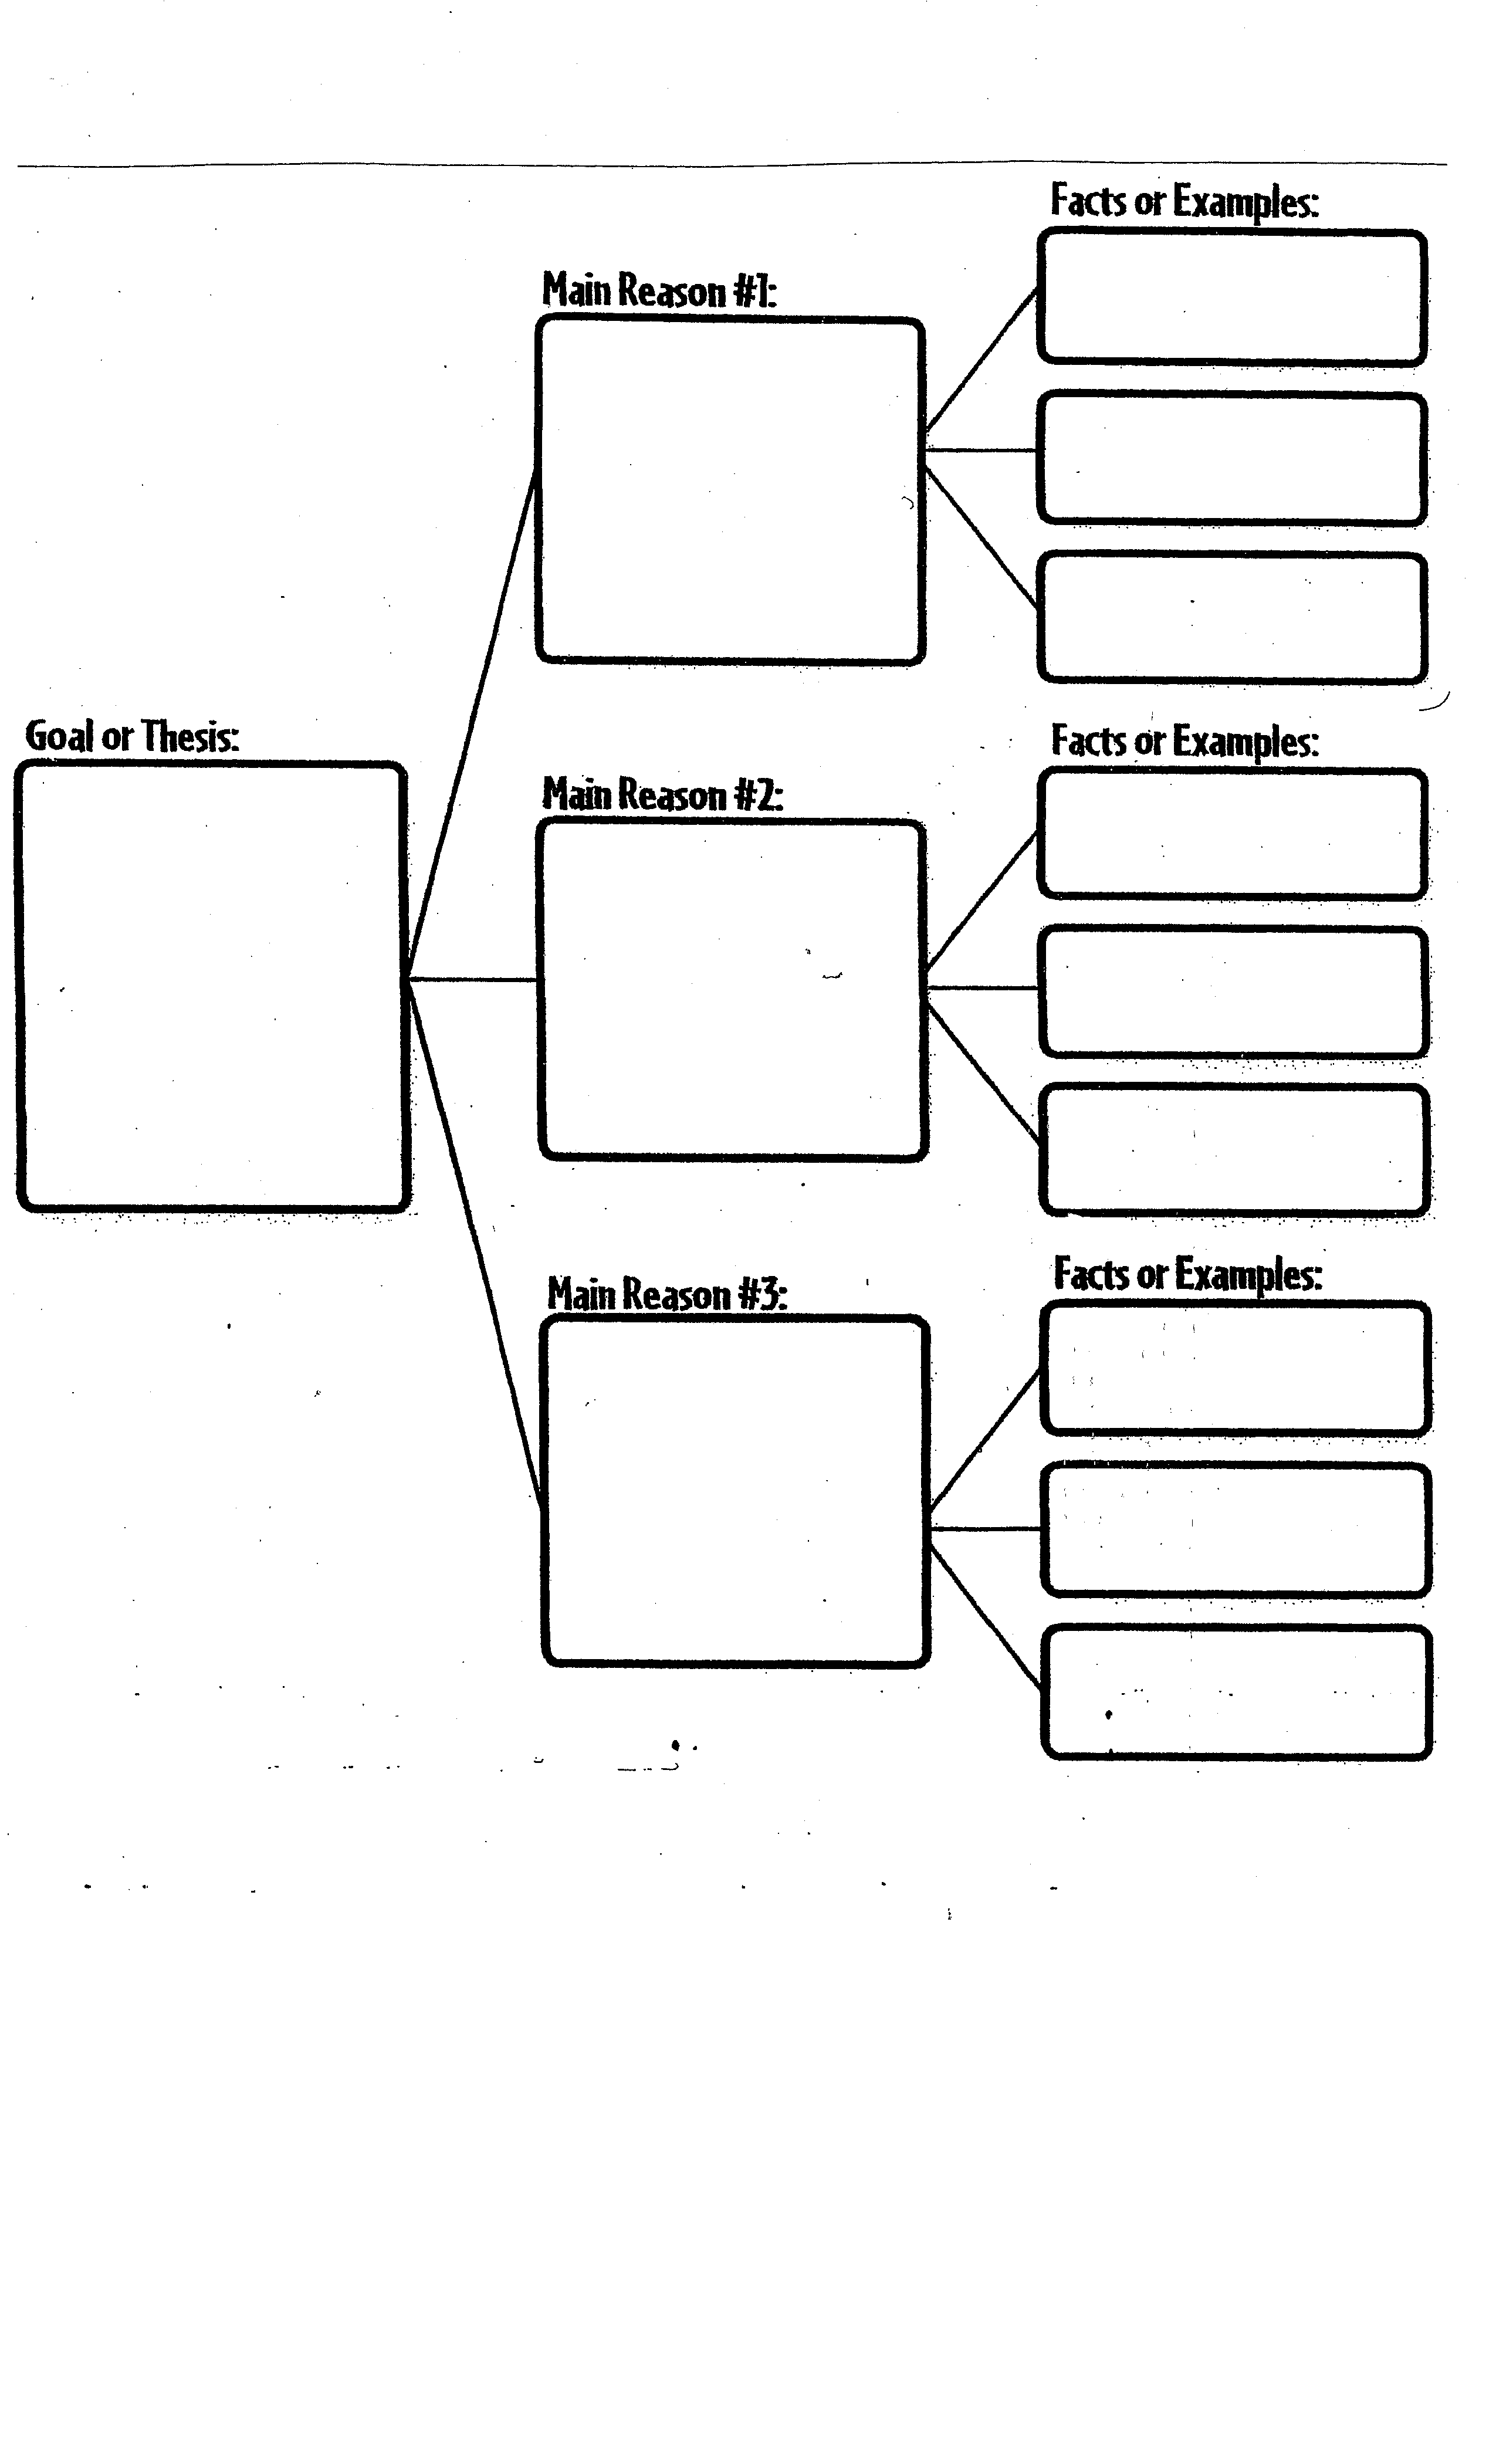 Graphic Organizer Examples For Science - Google Search | Writing Graphic  Organizers, Argumentative Writing Graphic Organizer, Persuasive Writing